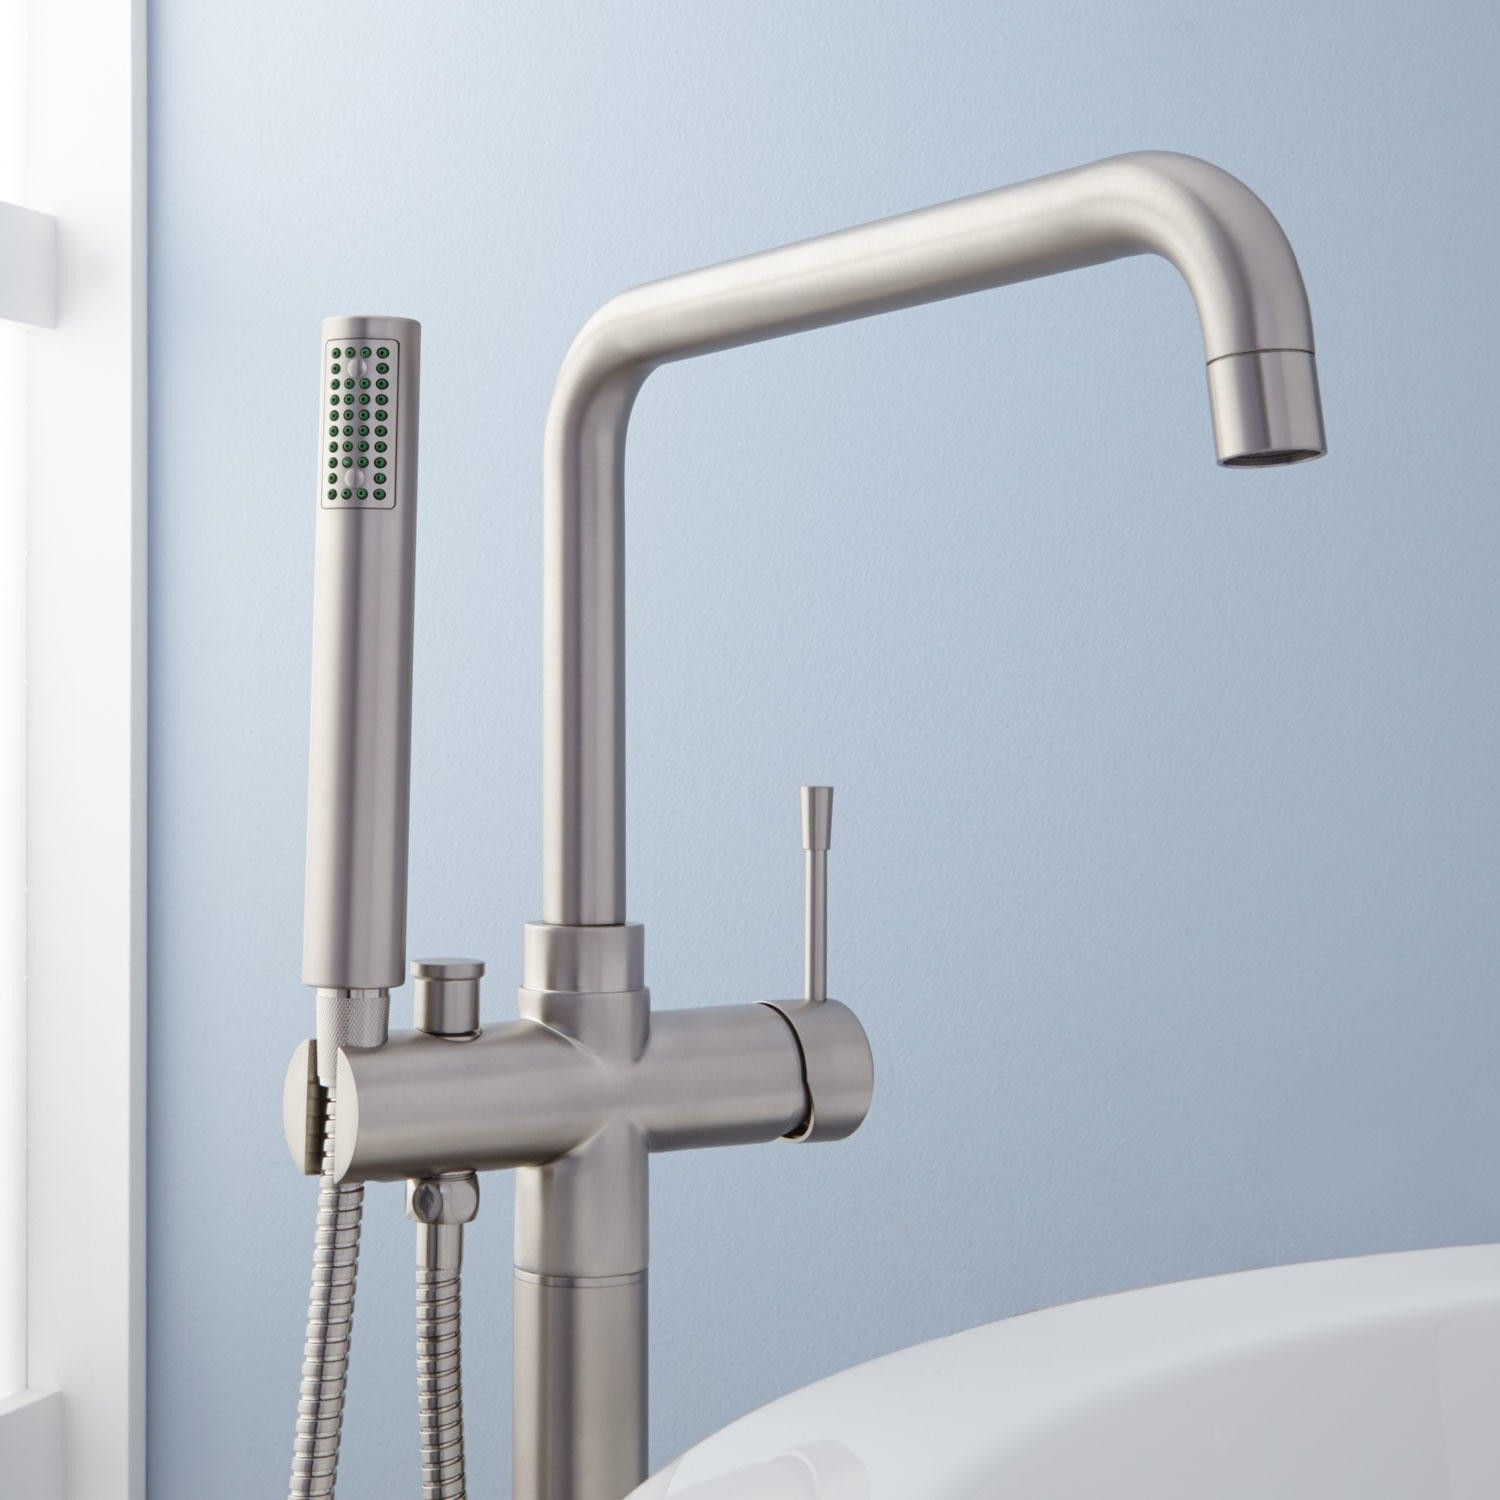 Humboldt Thermostatic Freestanding Tub Faucet | bathroom faucets ...